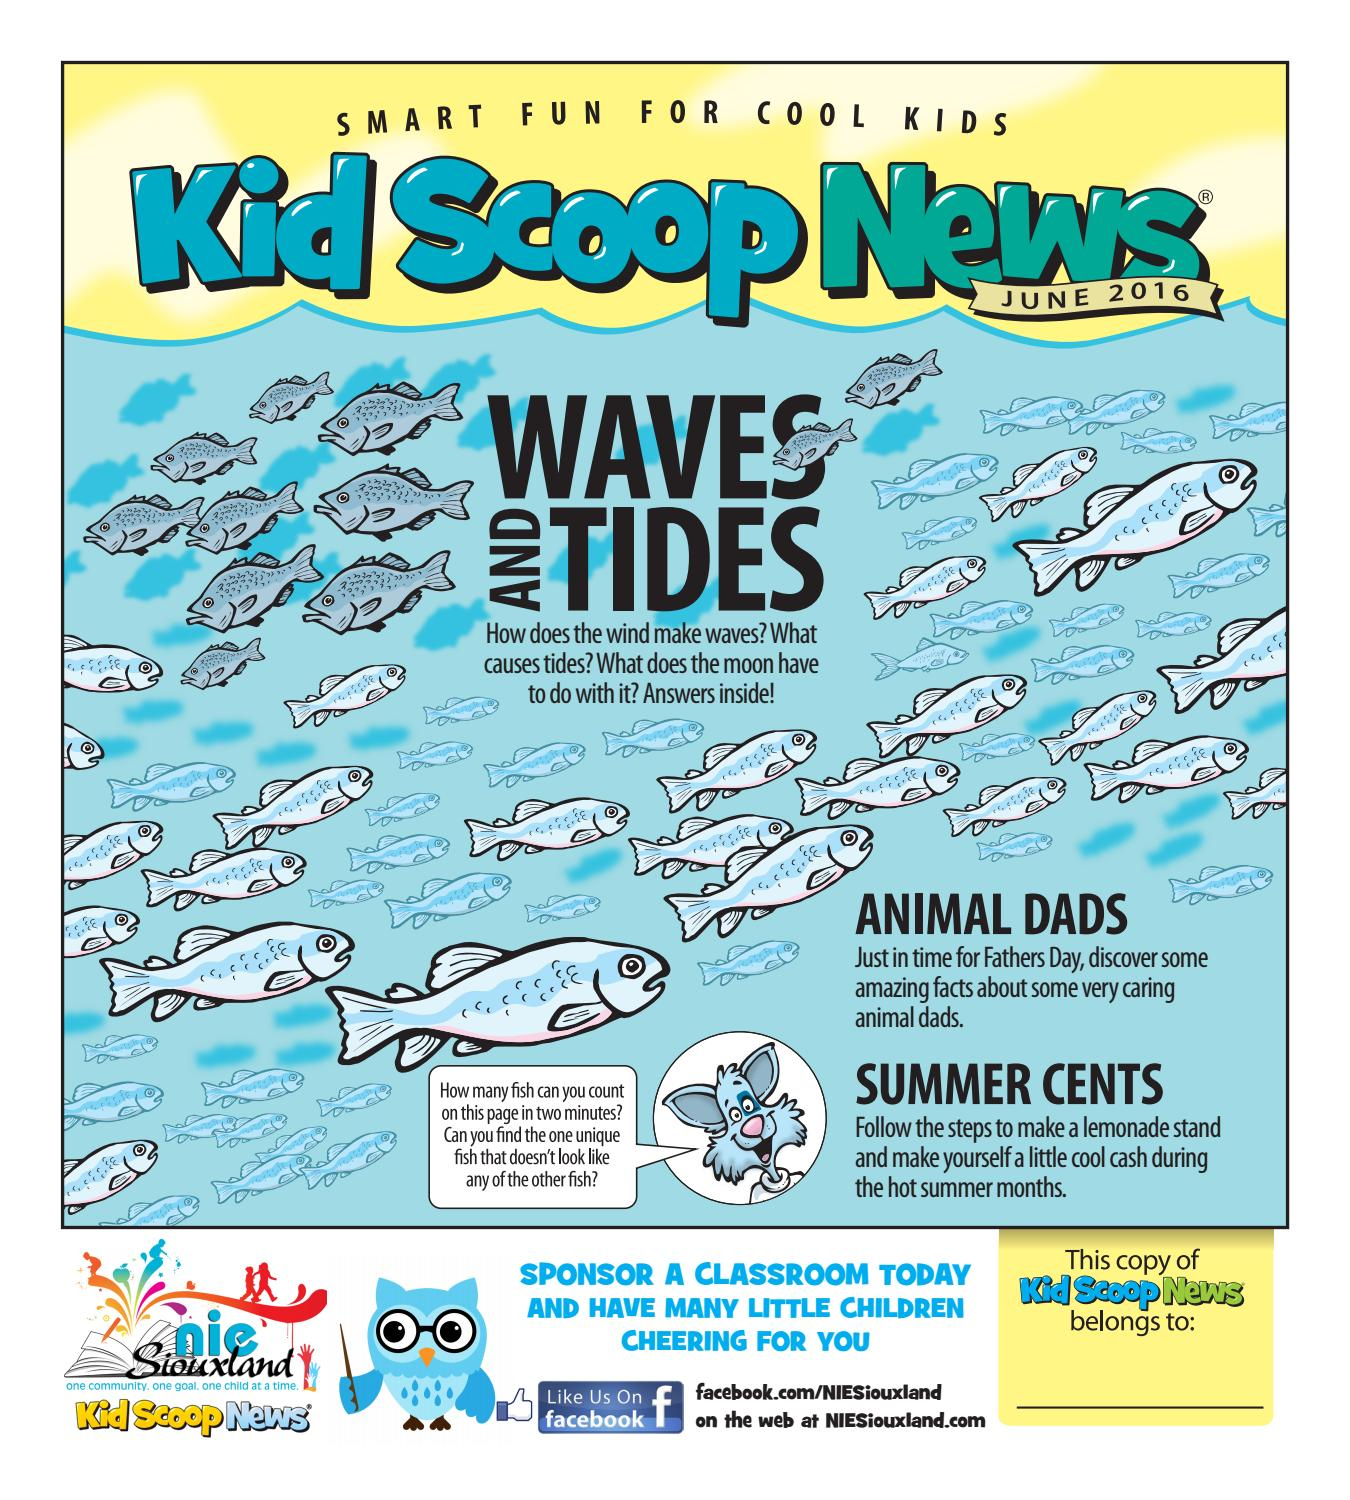 Kids Scoop News - April 2016 by Sioux City Journal - issuu